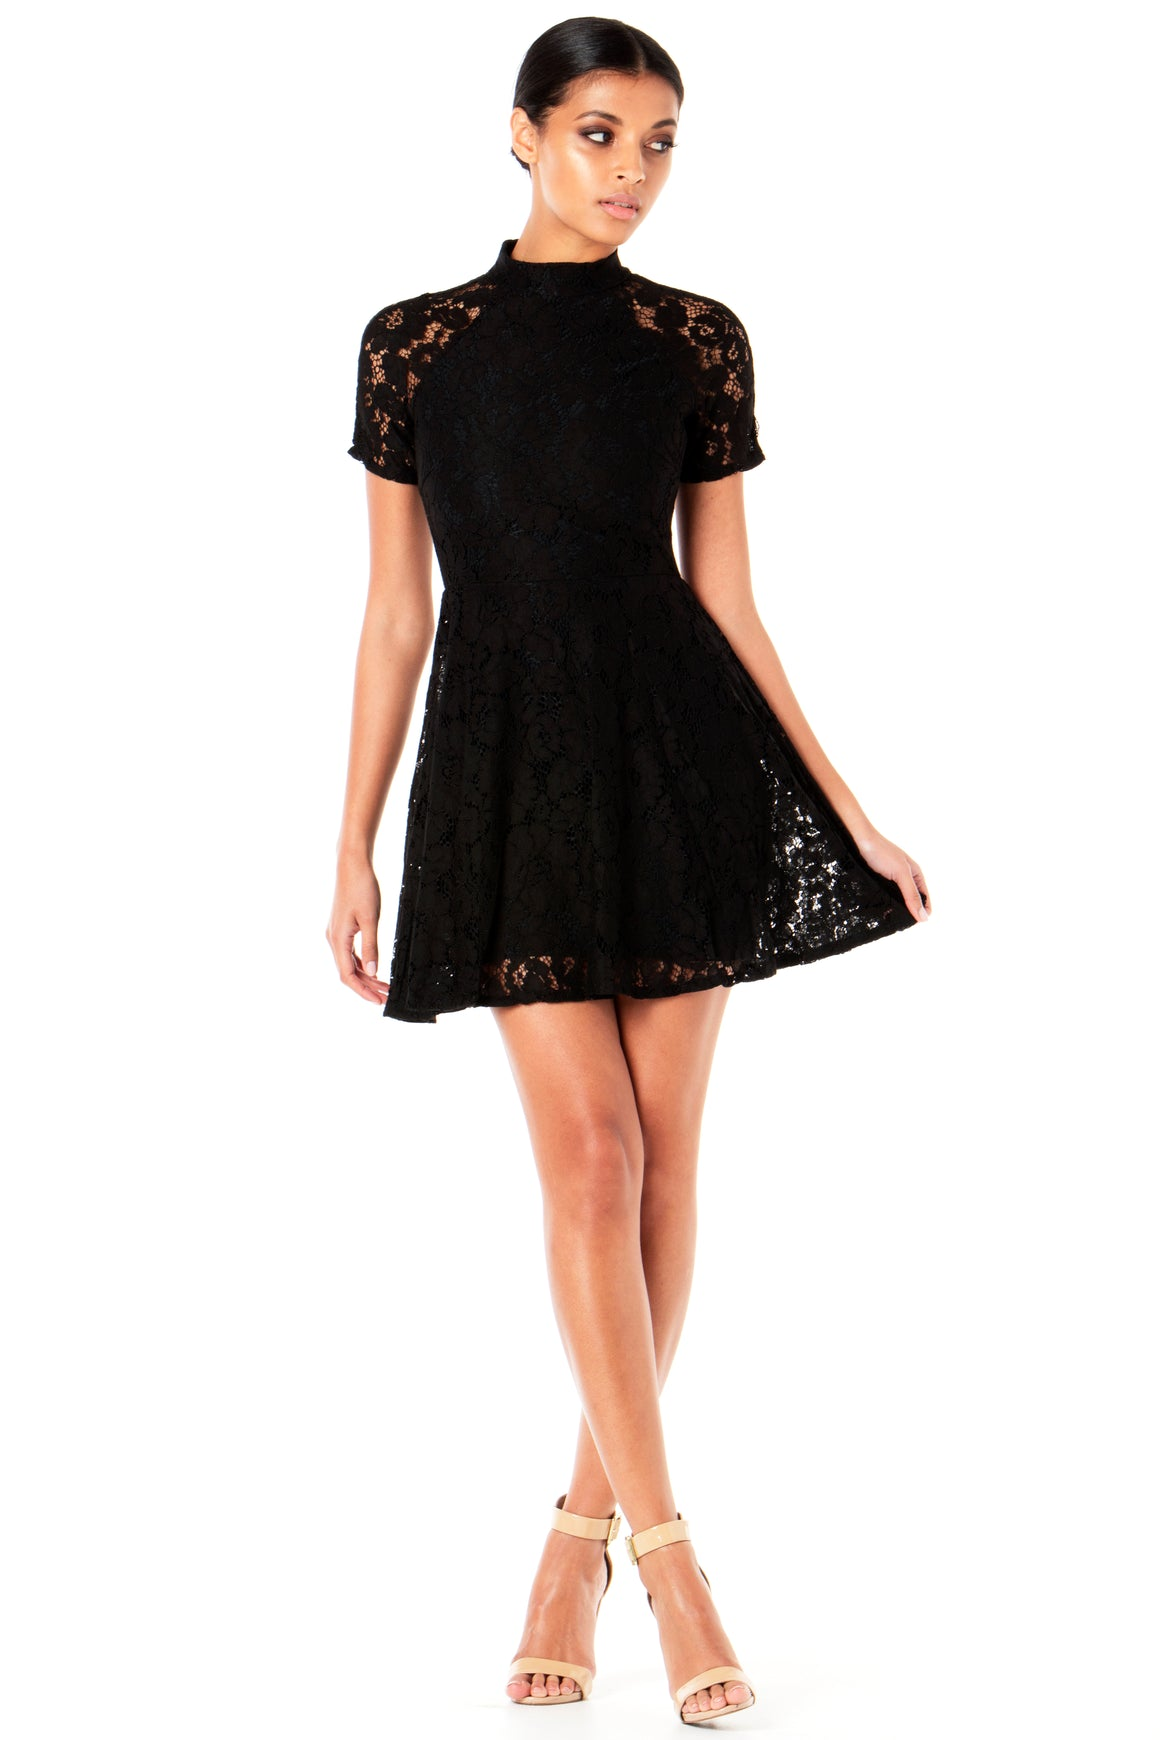 Willow Lace Dress - Black [SAMPLE SALE]